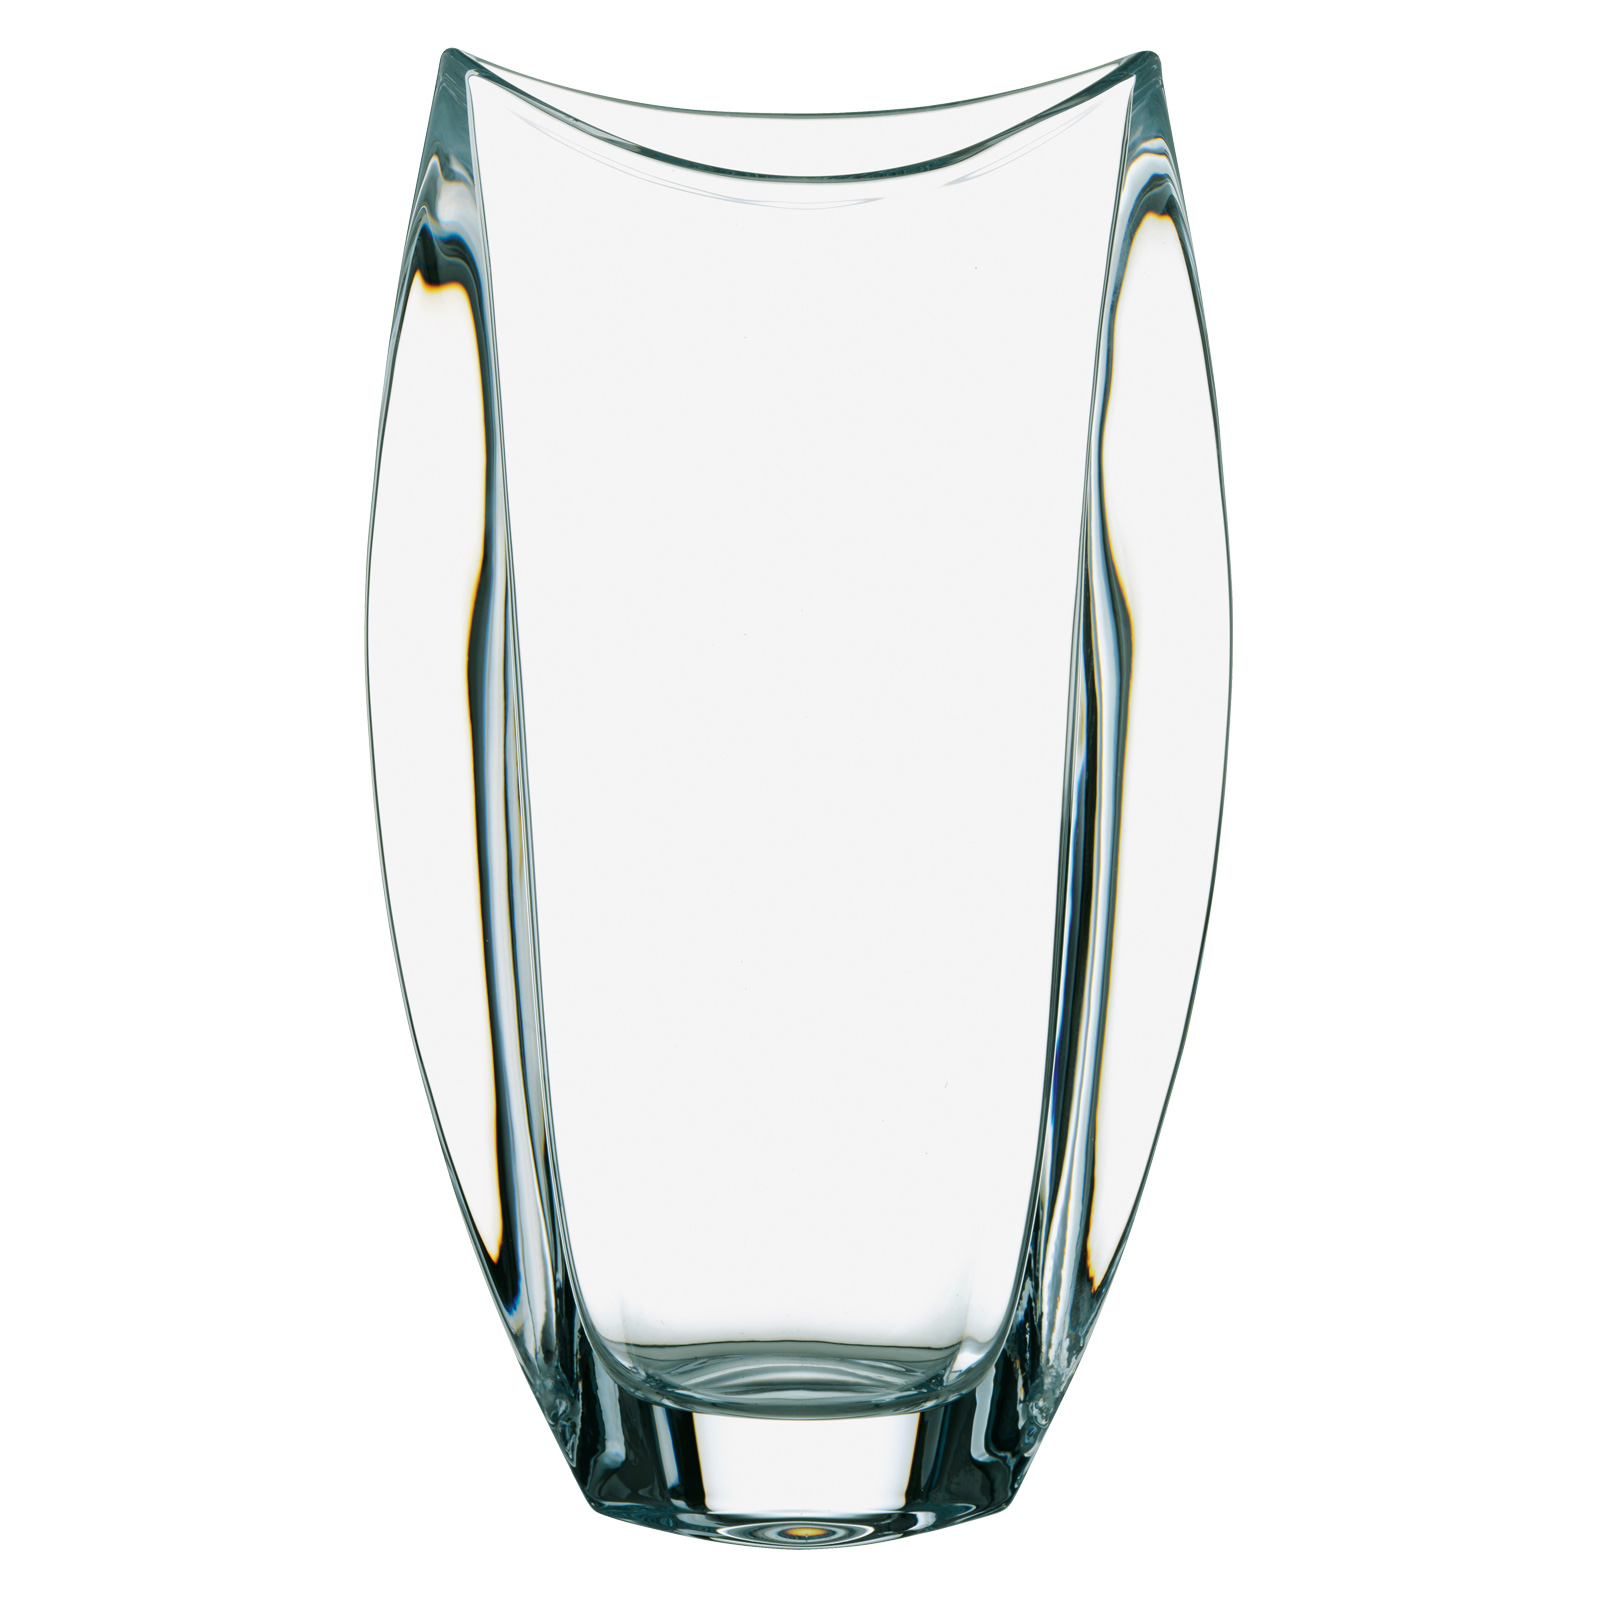 Orbit Tall Vase by Bohemia